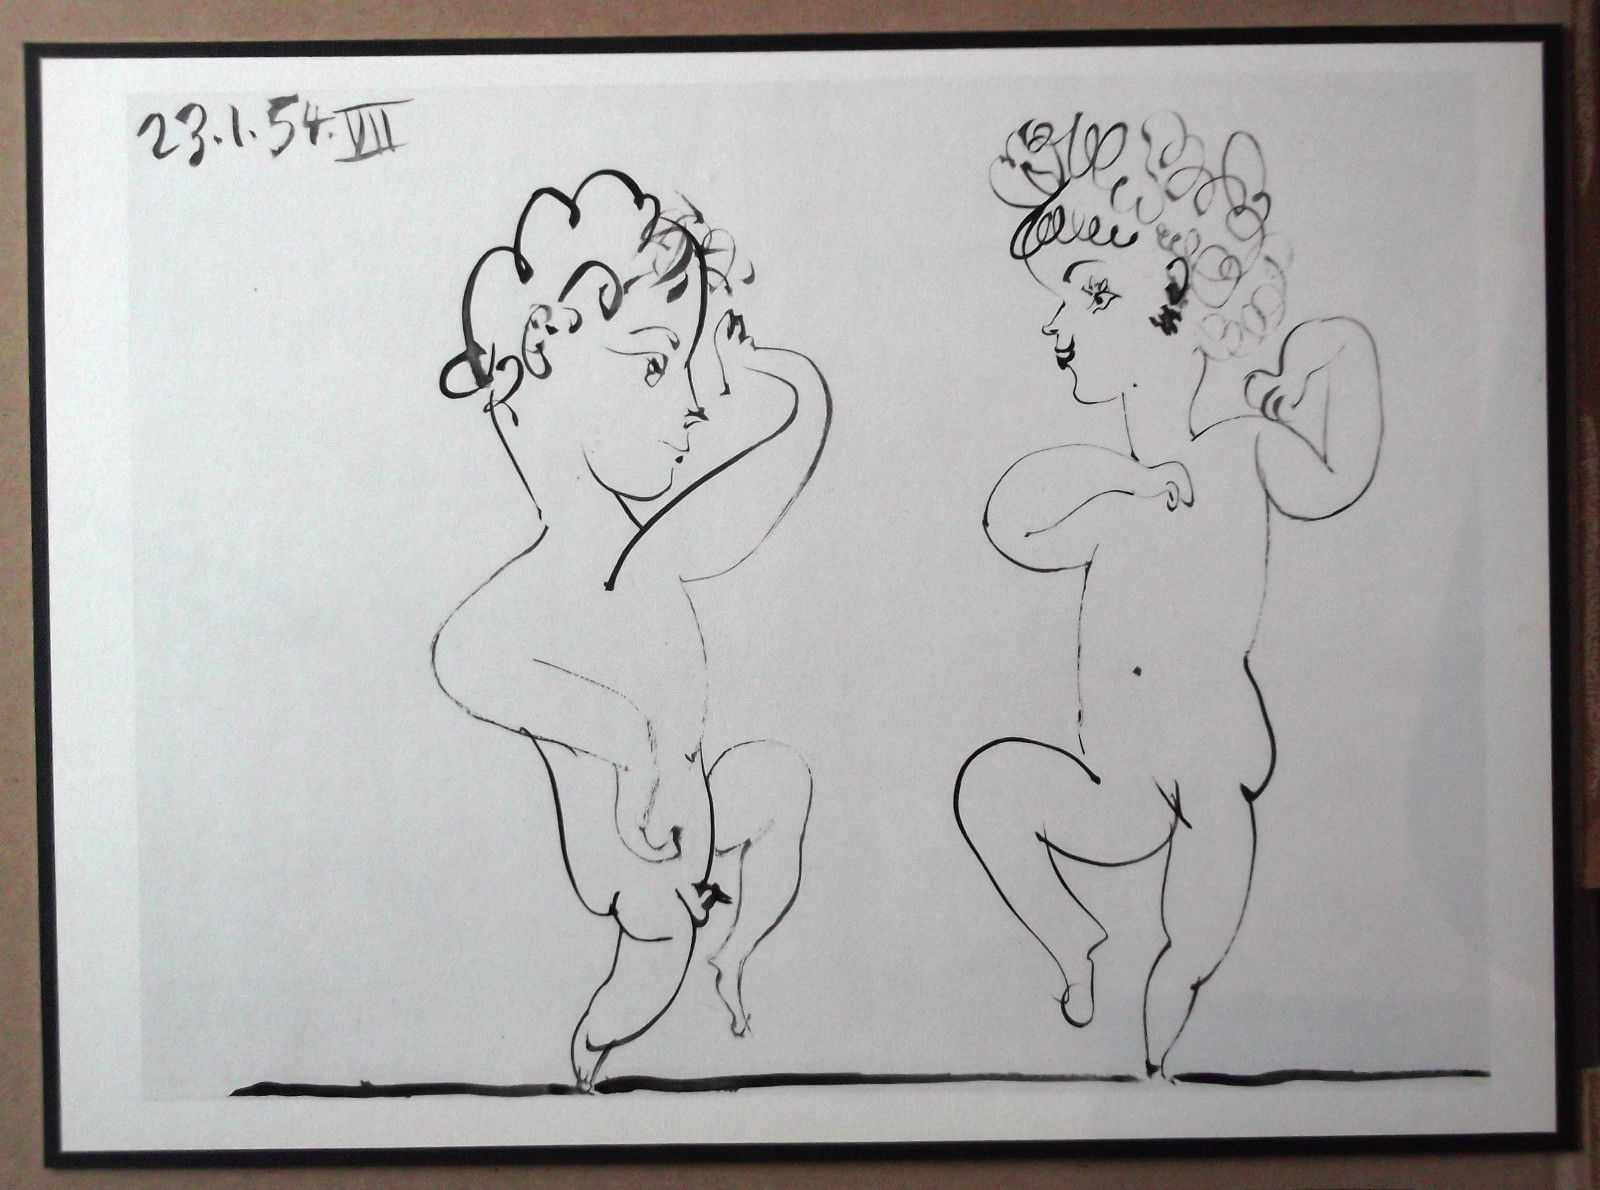 PICASSO ENGRAVING DATED 1954 +COA RARE ART INVESTMENT OPPORTUNITY or UNIQUE GIFT